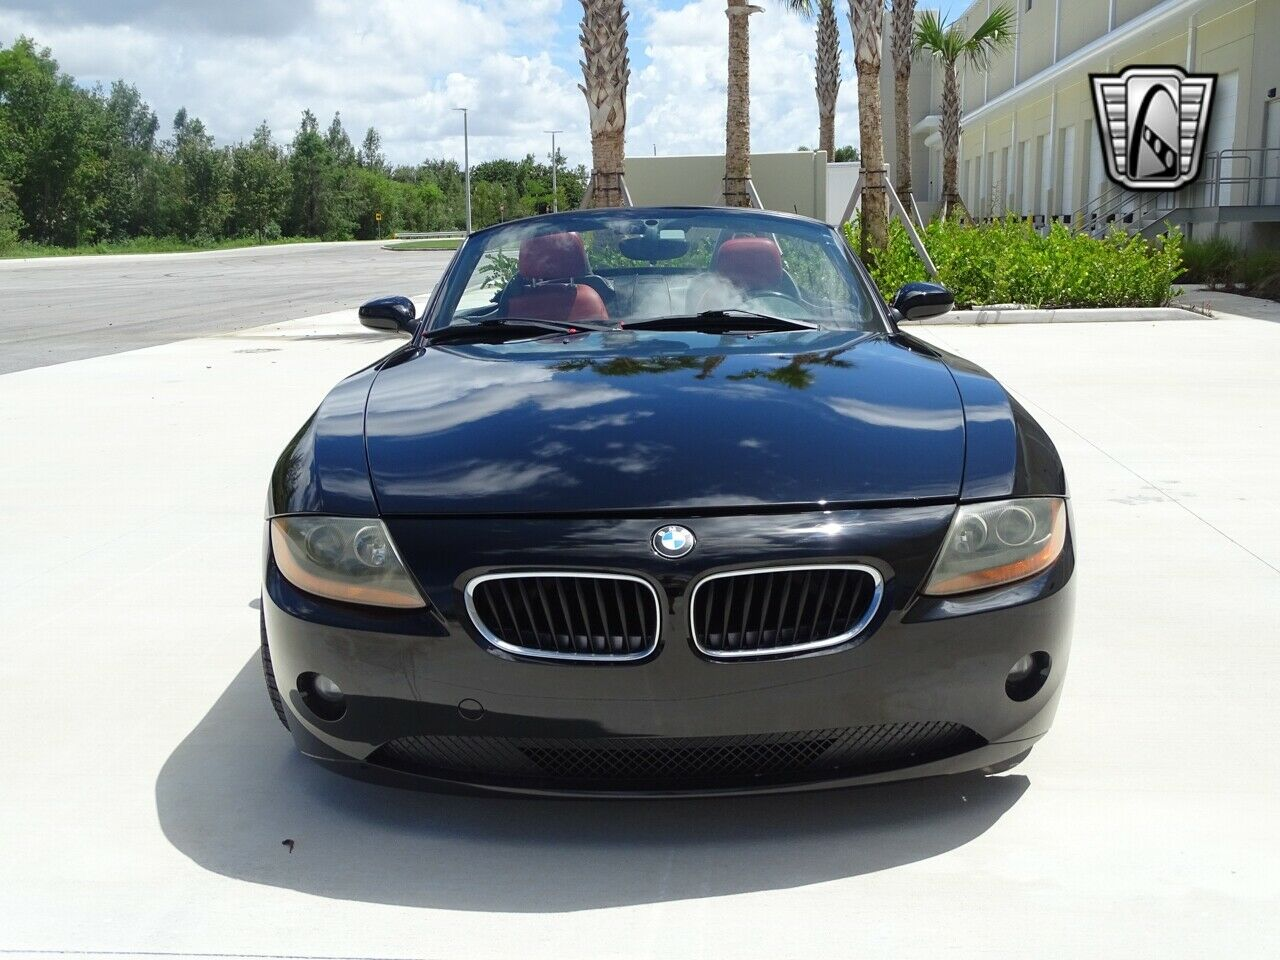 Black 2003 BMW Z4 Convertible 2.5L I6    F DOHC 24V 6 Speed Automatic Available